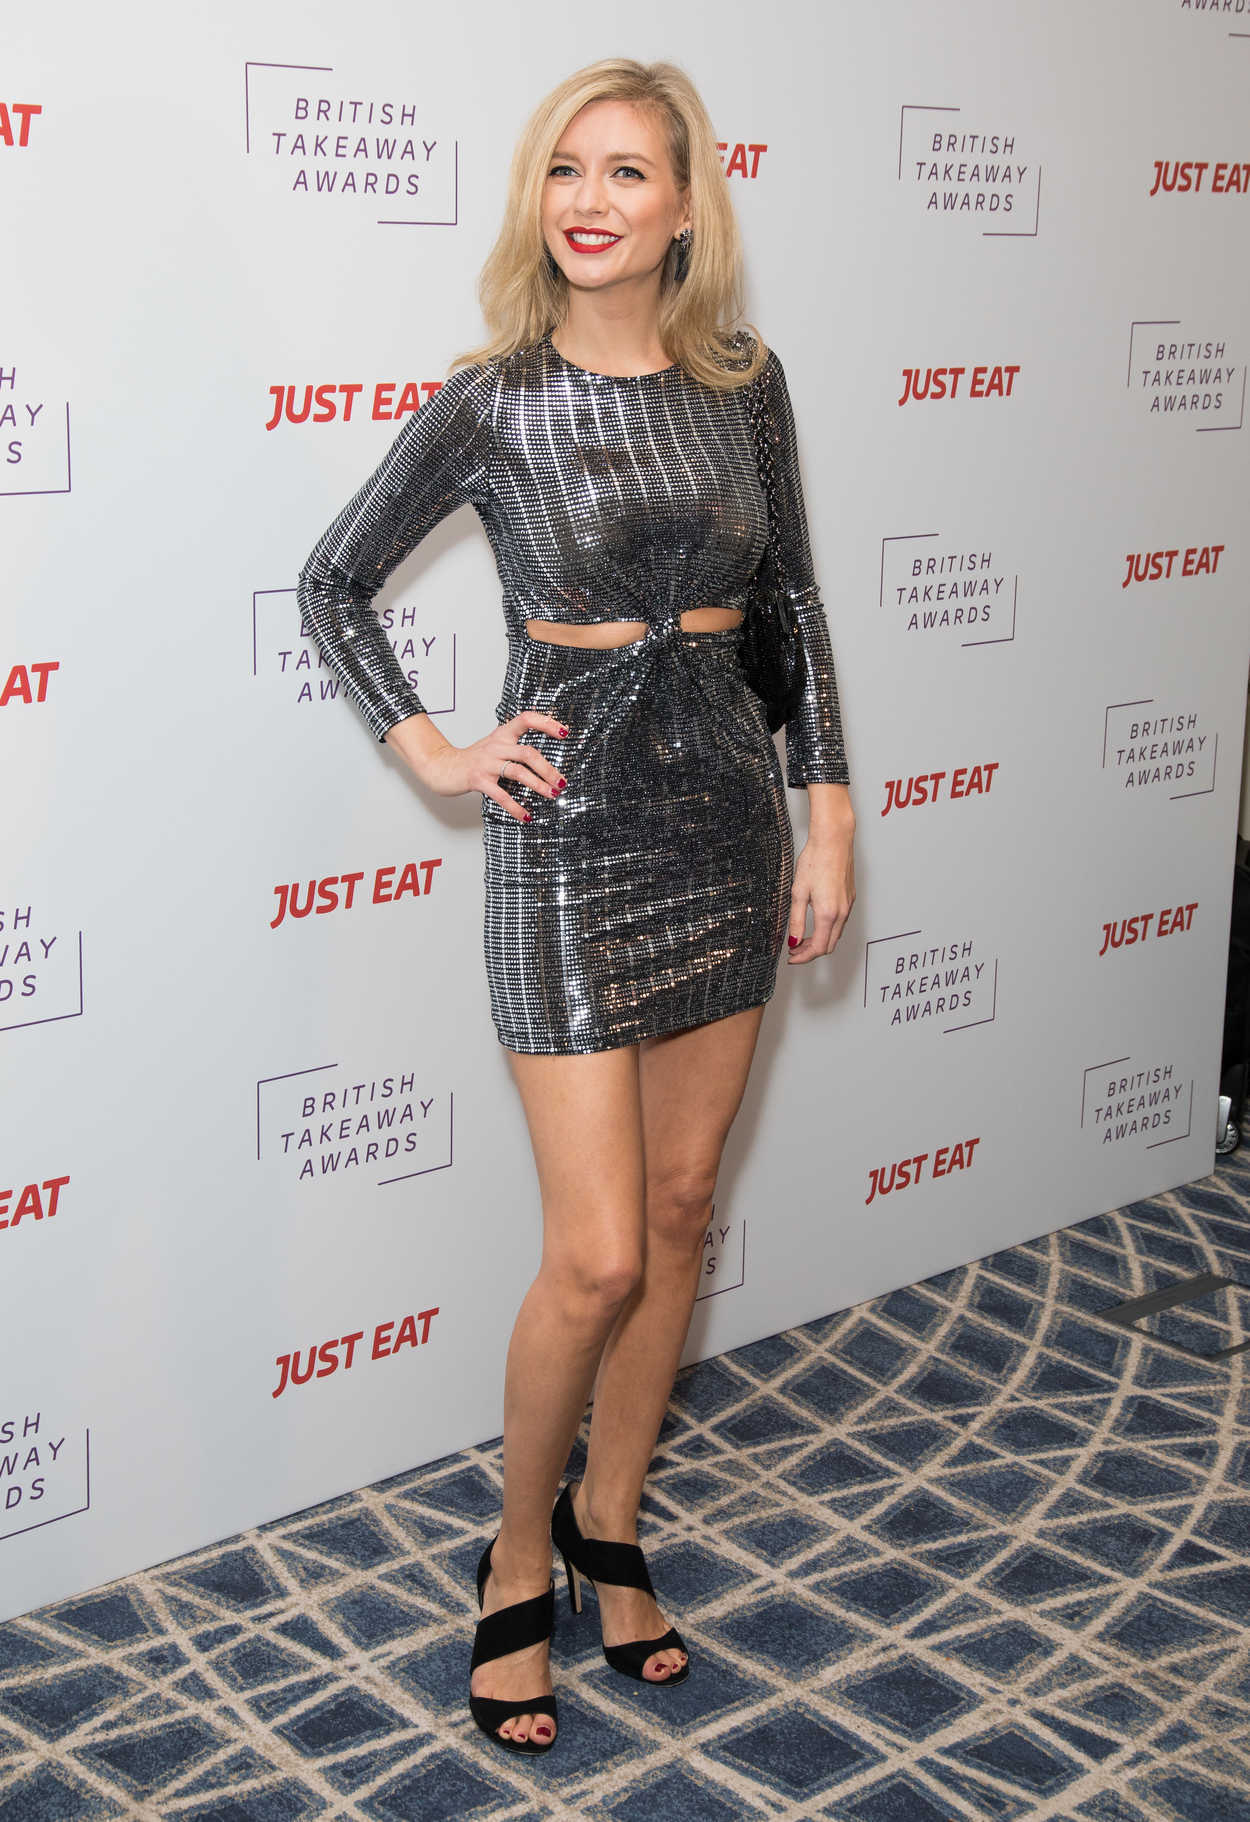 Rachel Riley Attends the British Takeaway Awards in London ...